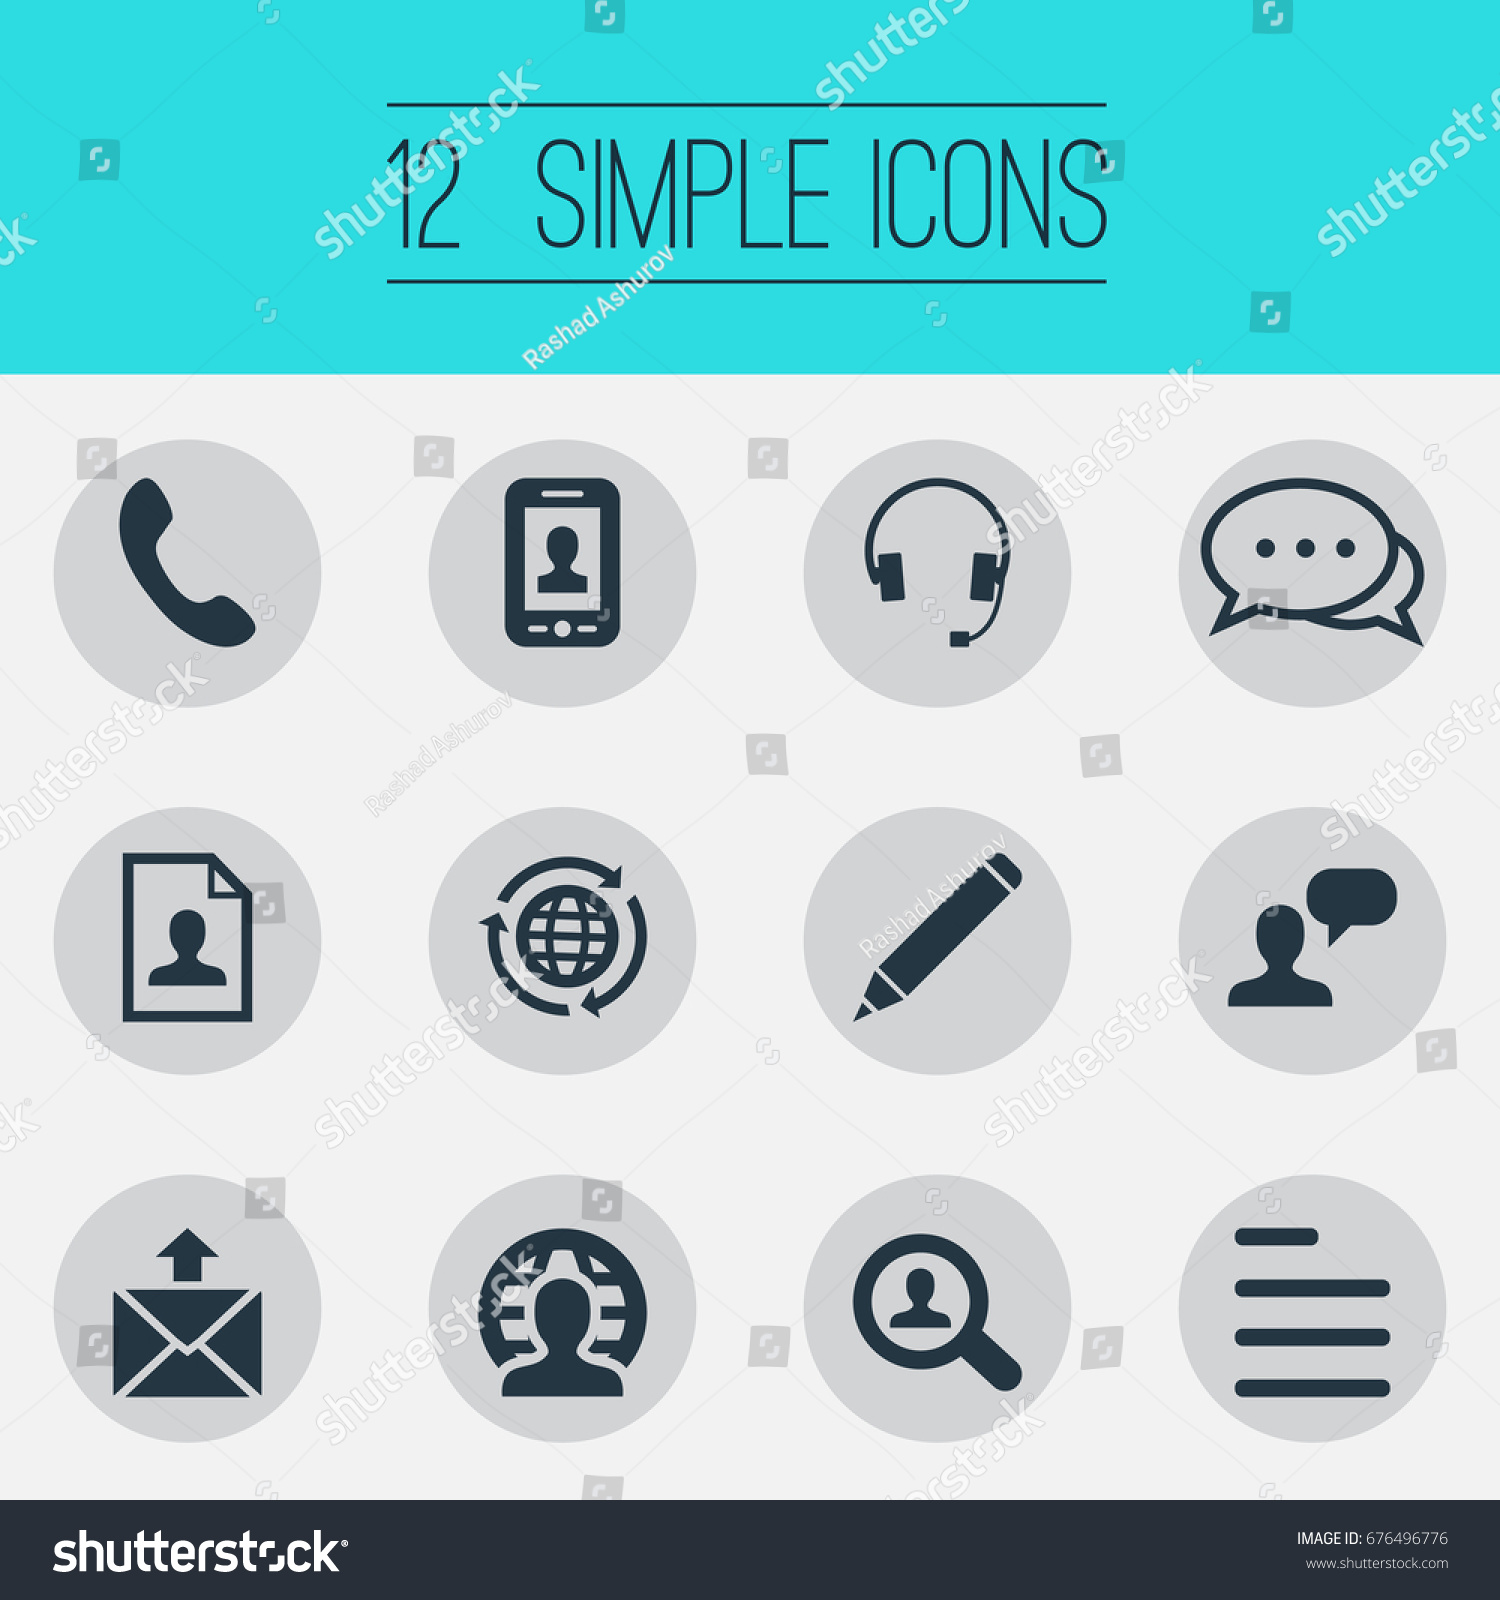 vector illustration set simple contact icons stock vector (royalty